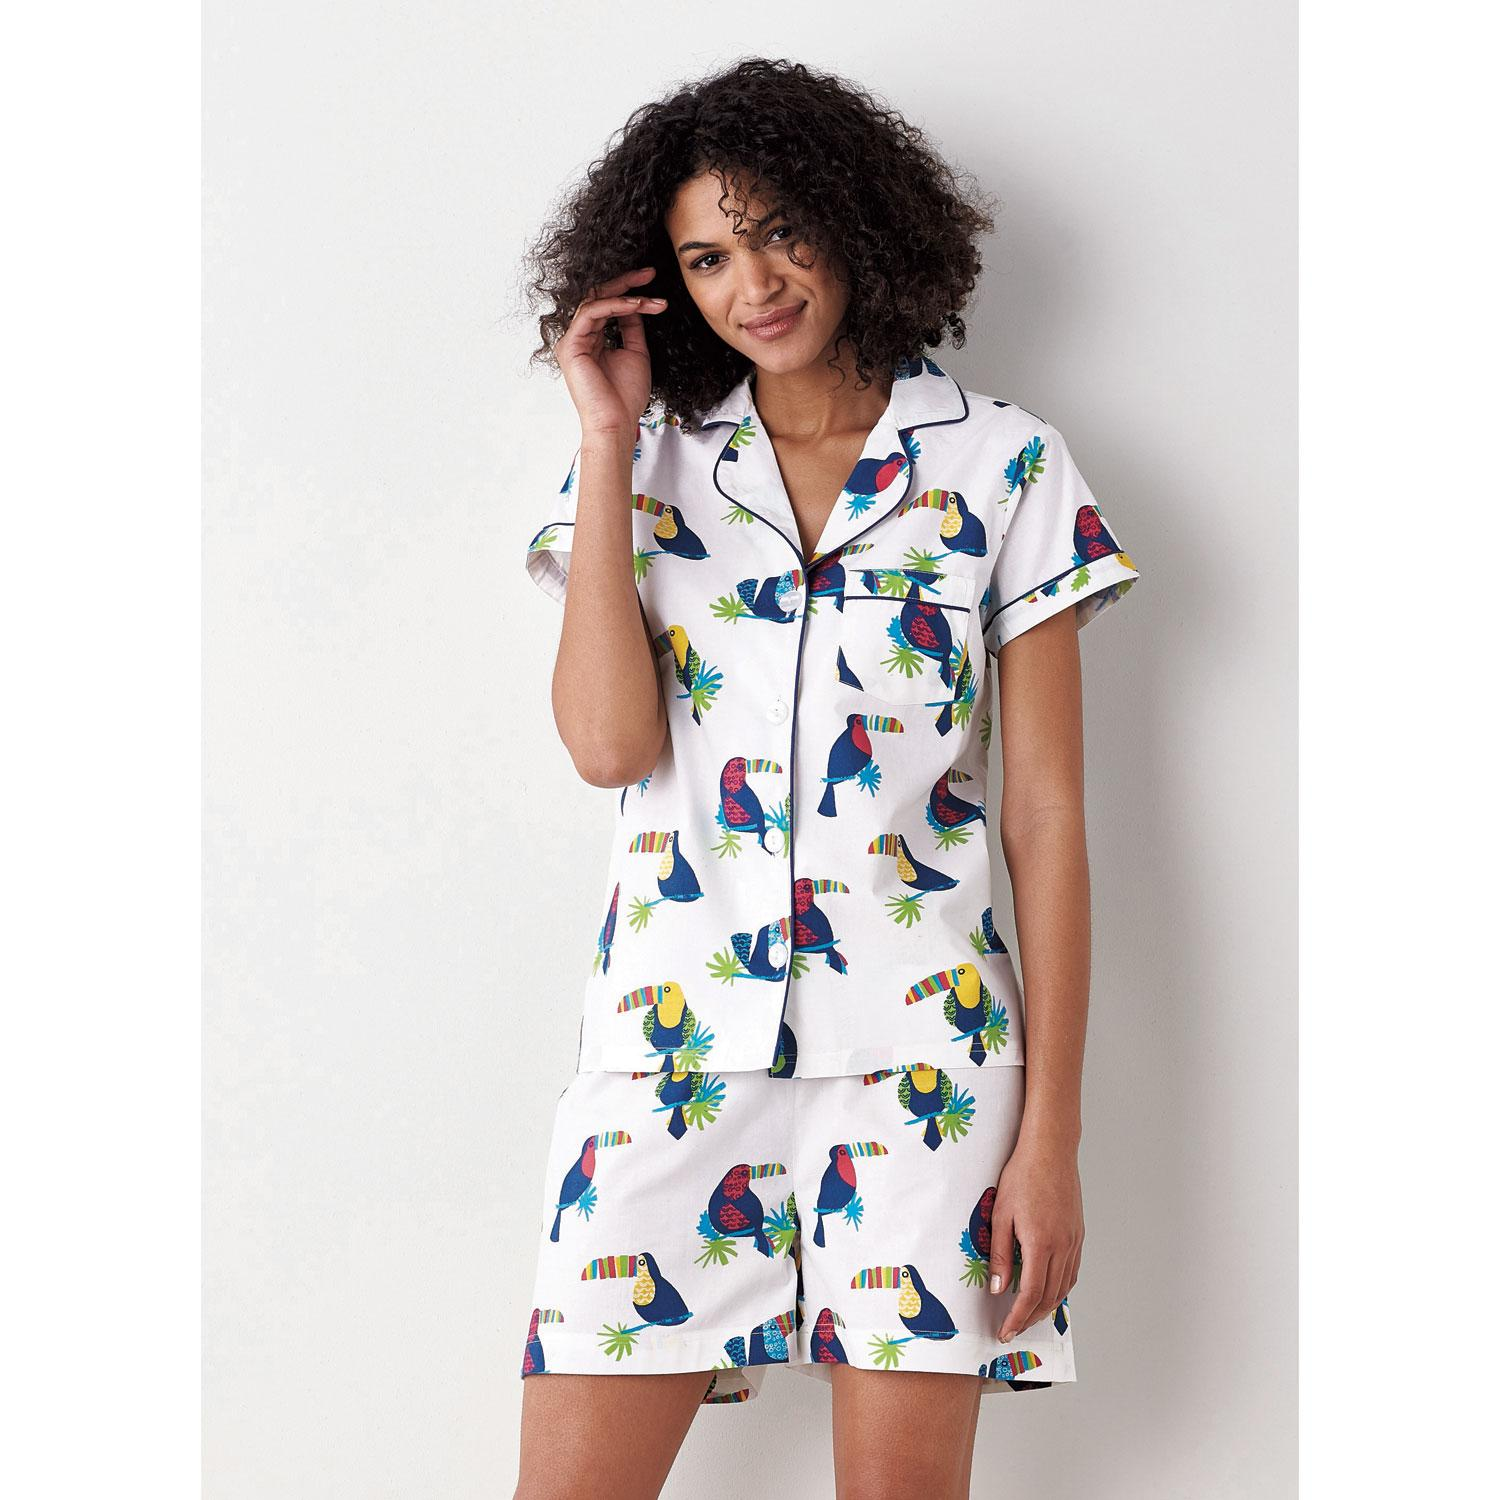 0be518b048 Printed Poplin Cotton Short Set Toucans L Toucan U.S. Supply ...